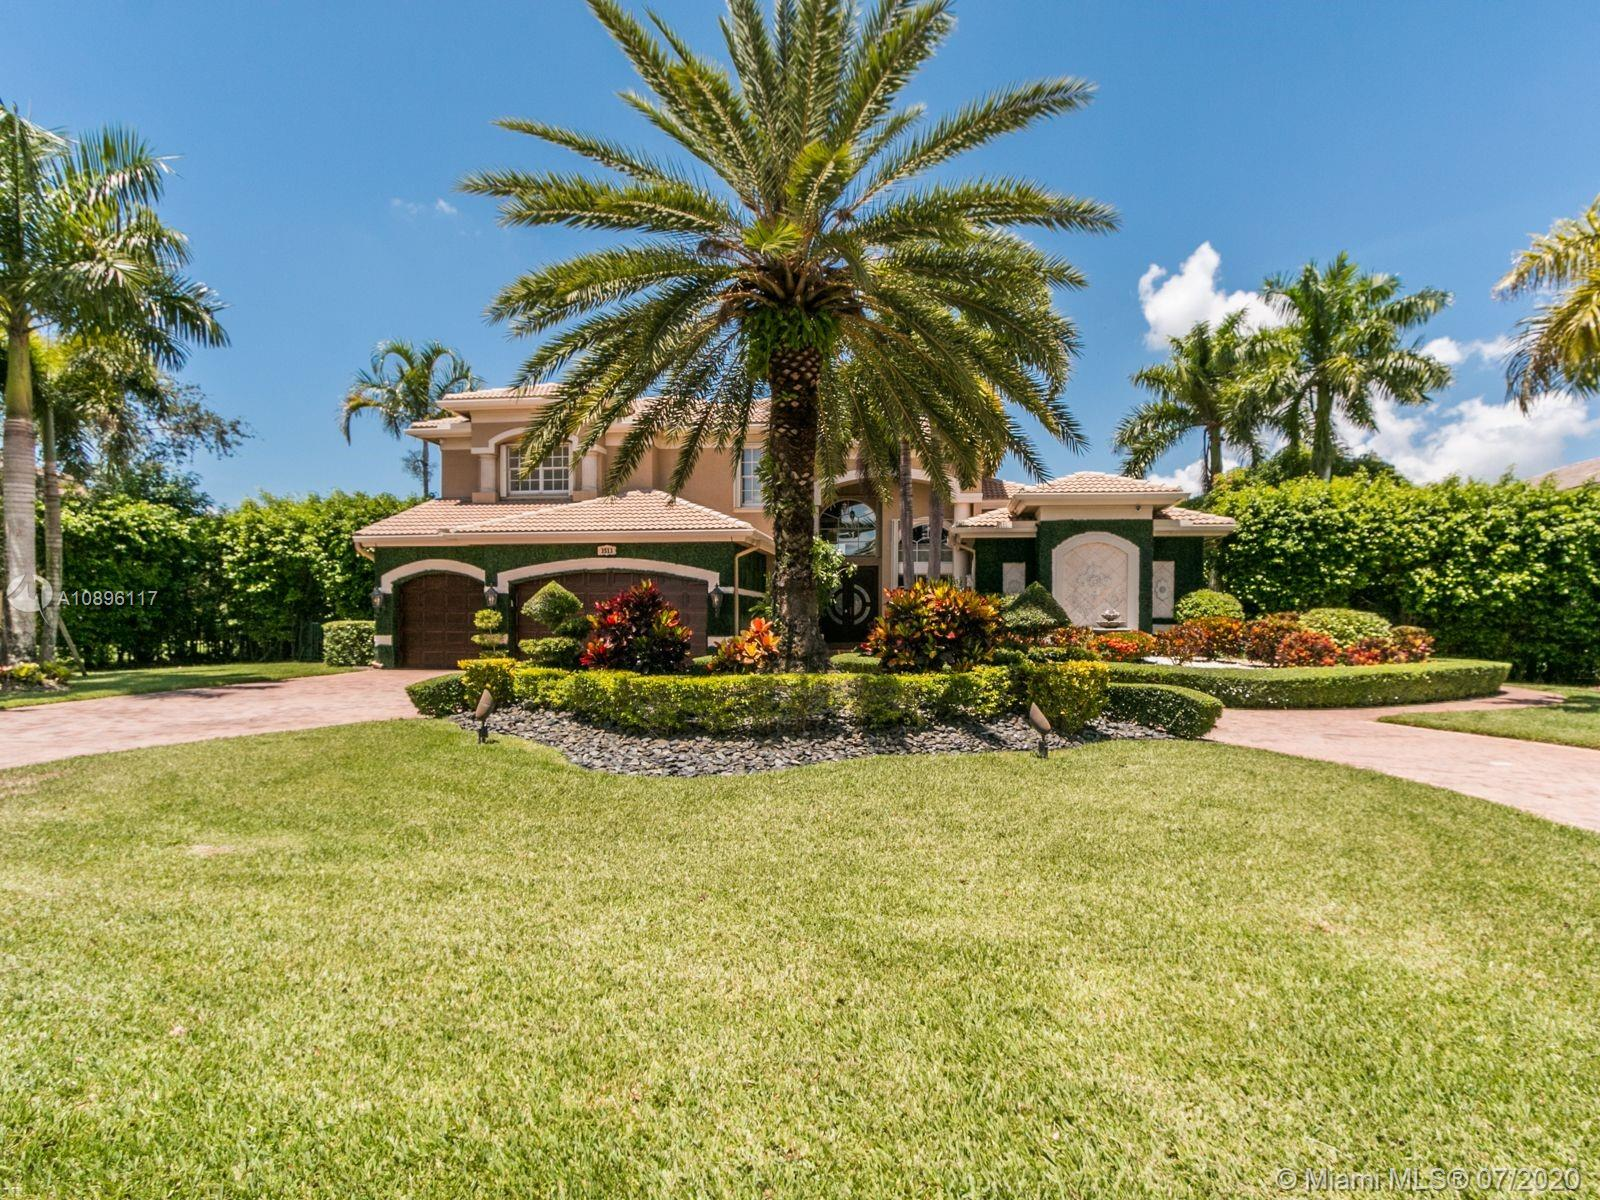 Long Lake Ranches - 3513 Dovecote Meadow Ln, Davie, FL 33328